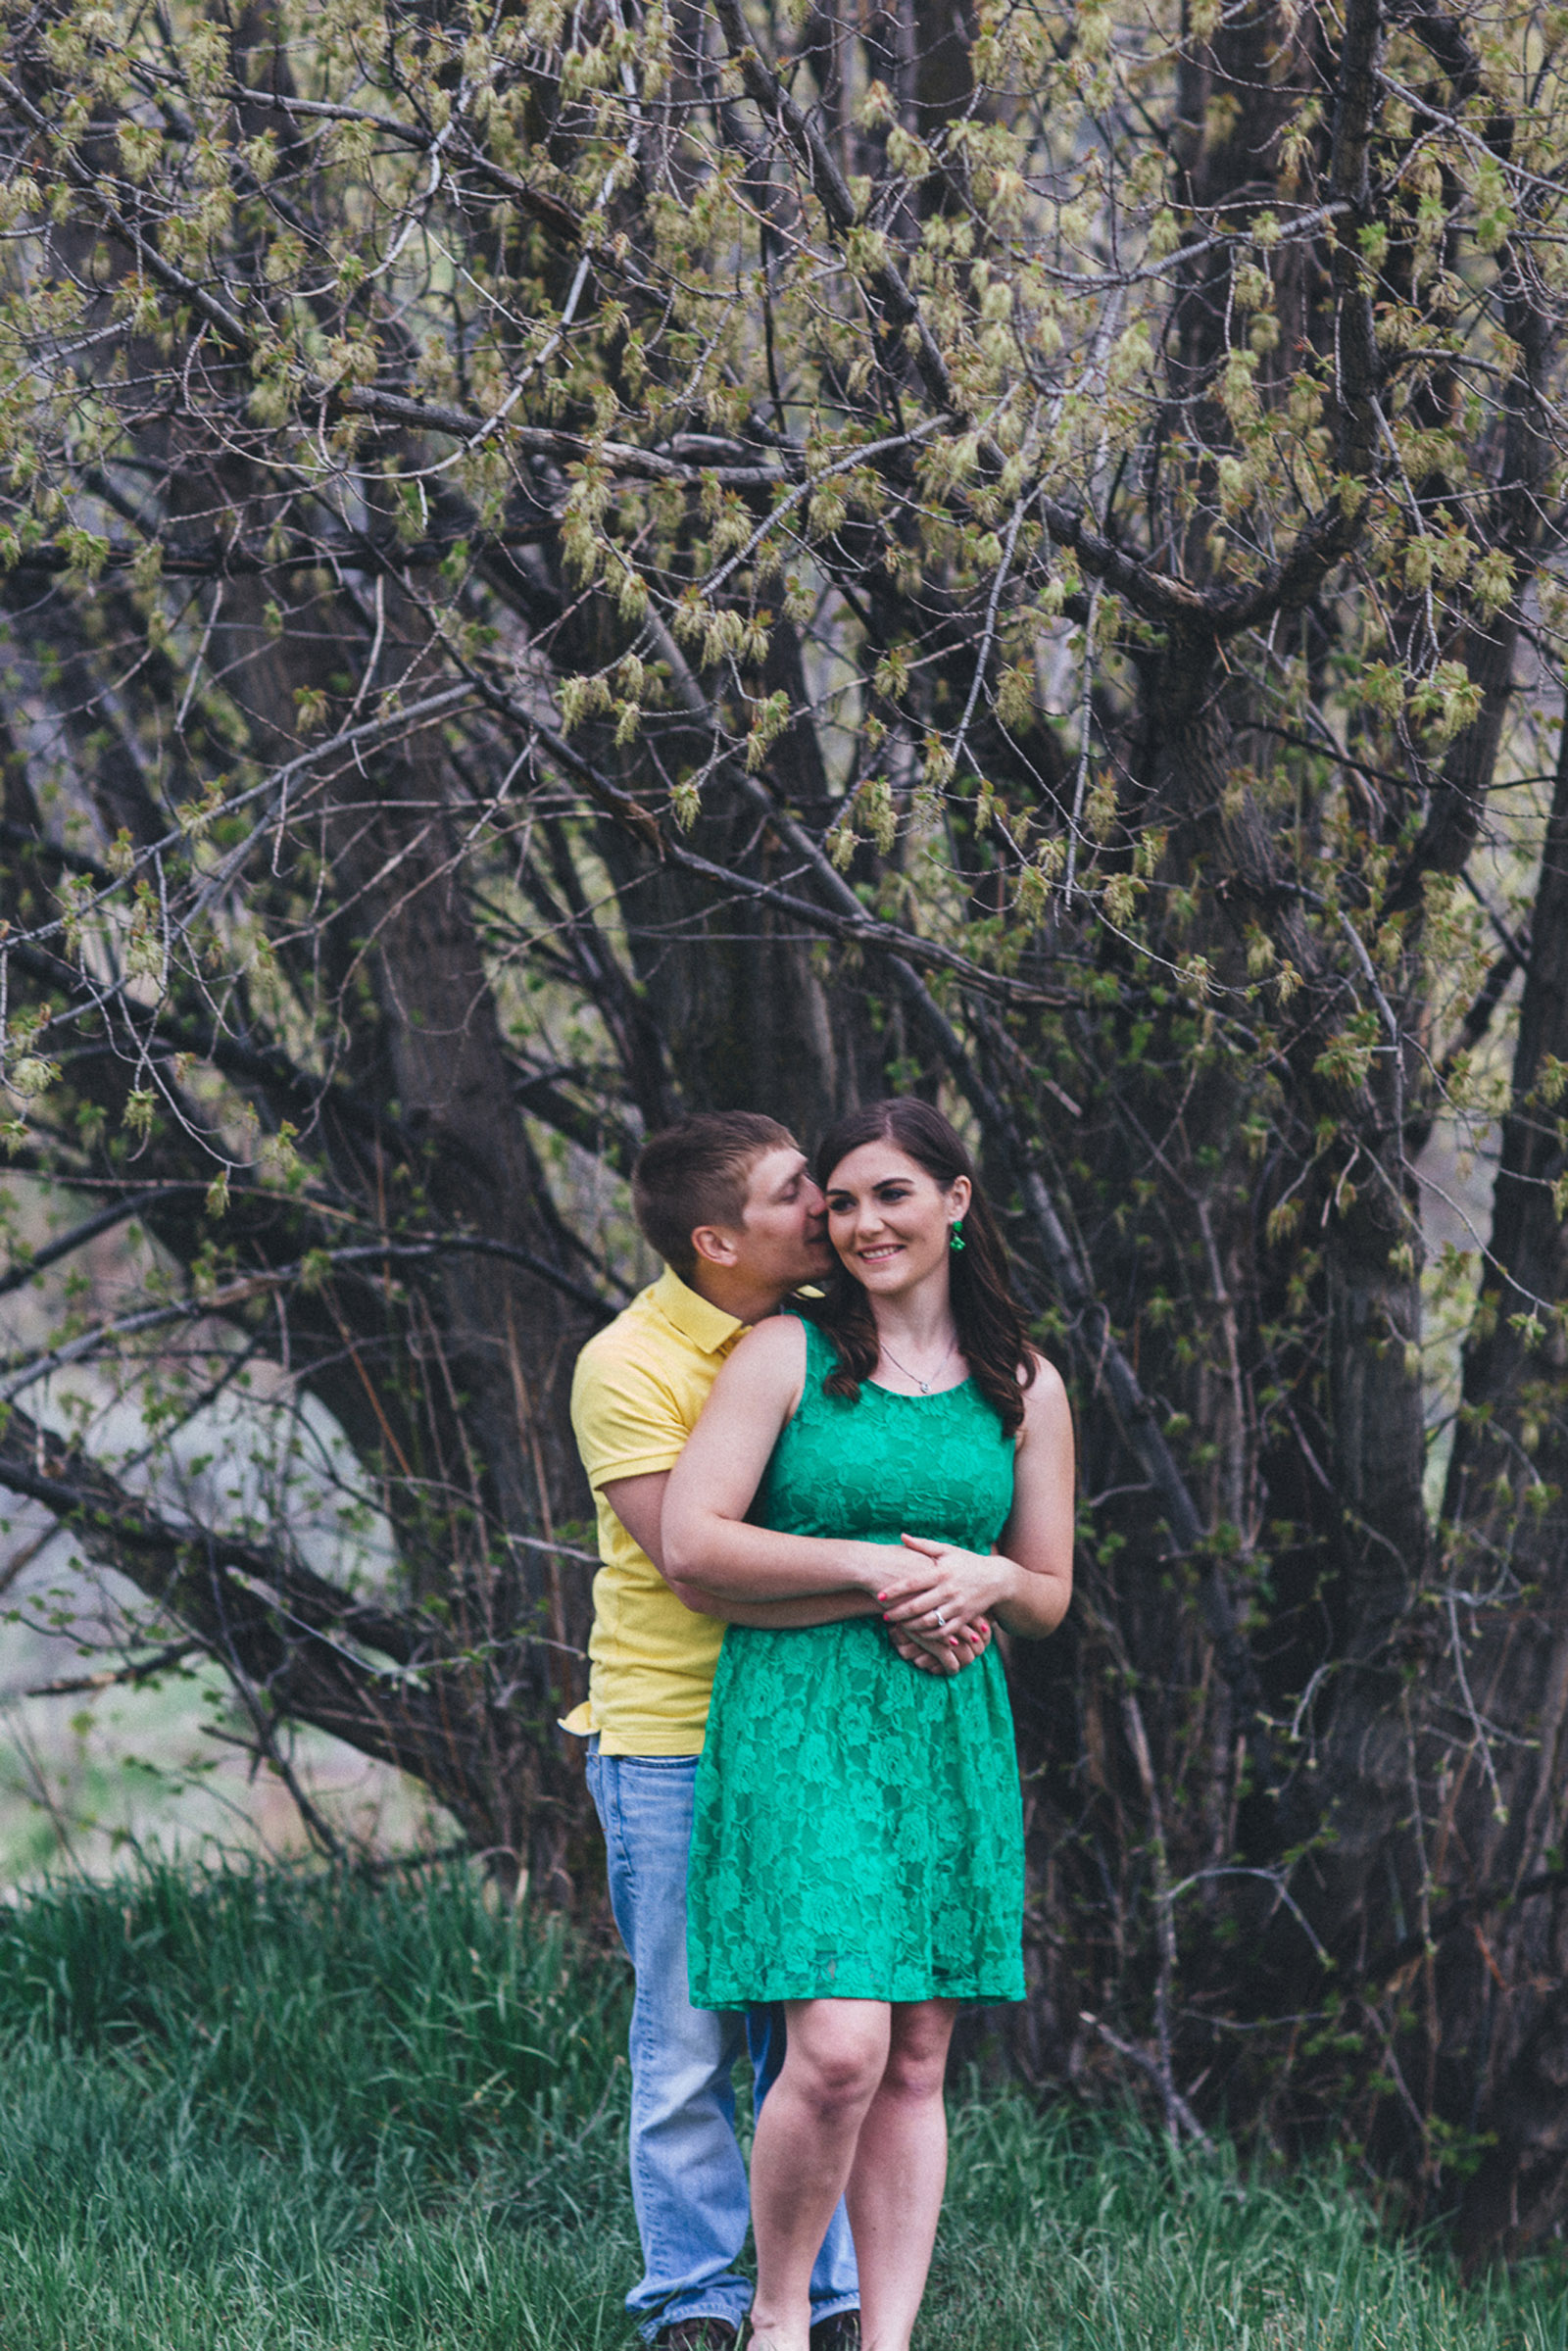 024-engagement-trees-fun-wedding-train-aughing-durango-colorado-farmington